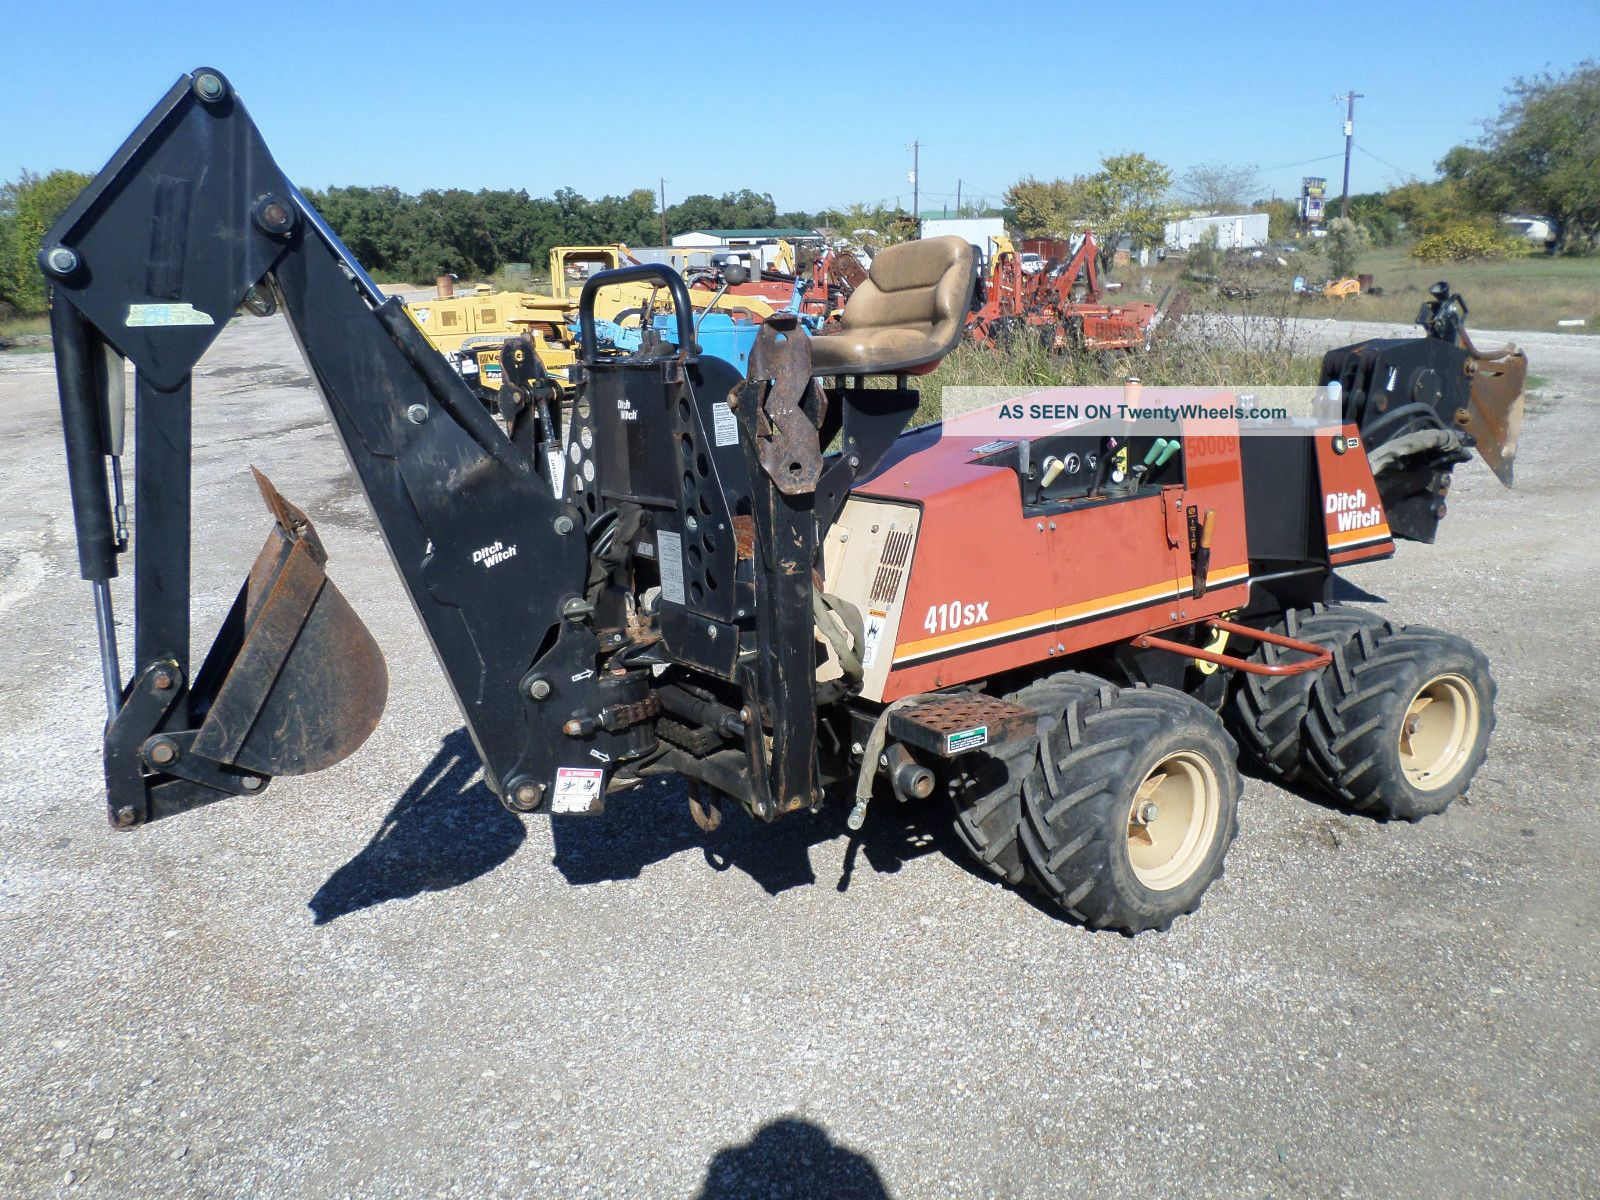 04 Ditch Witch 410sx Cable Plow With Backhoe Low Hrs